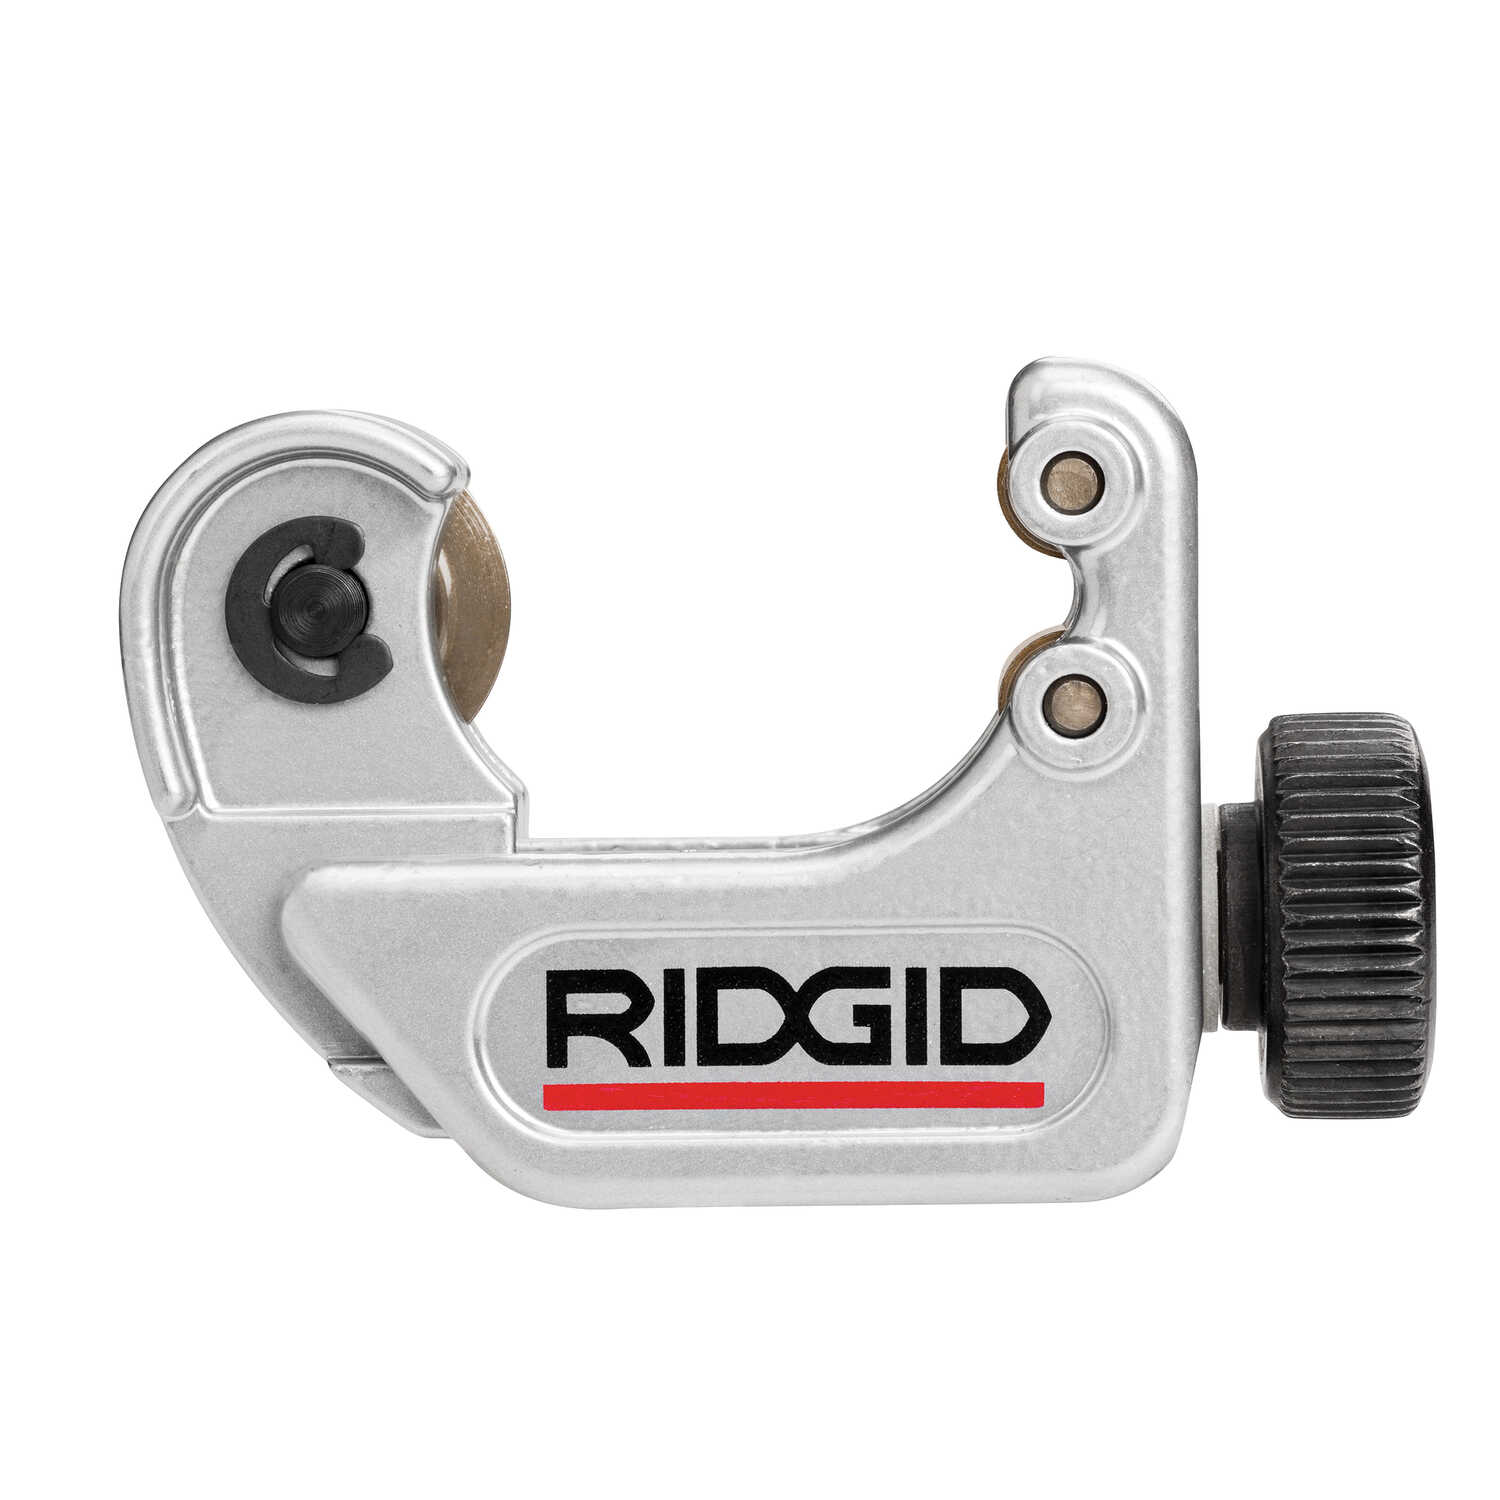 Ridgid Pipe Cutter - Ace Hardware